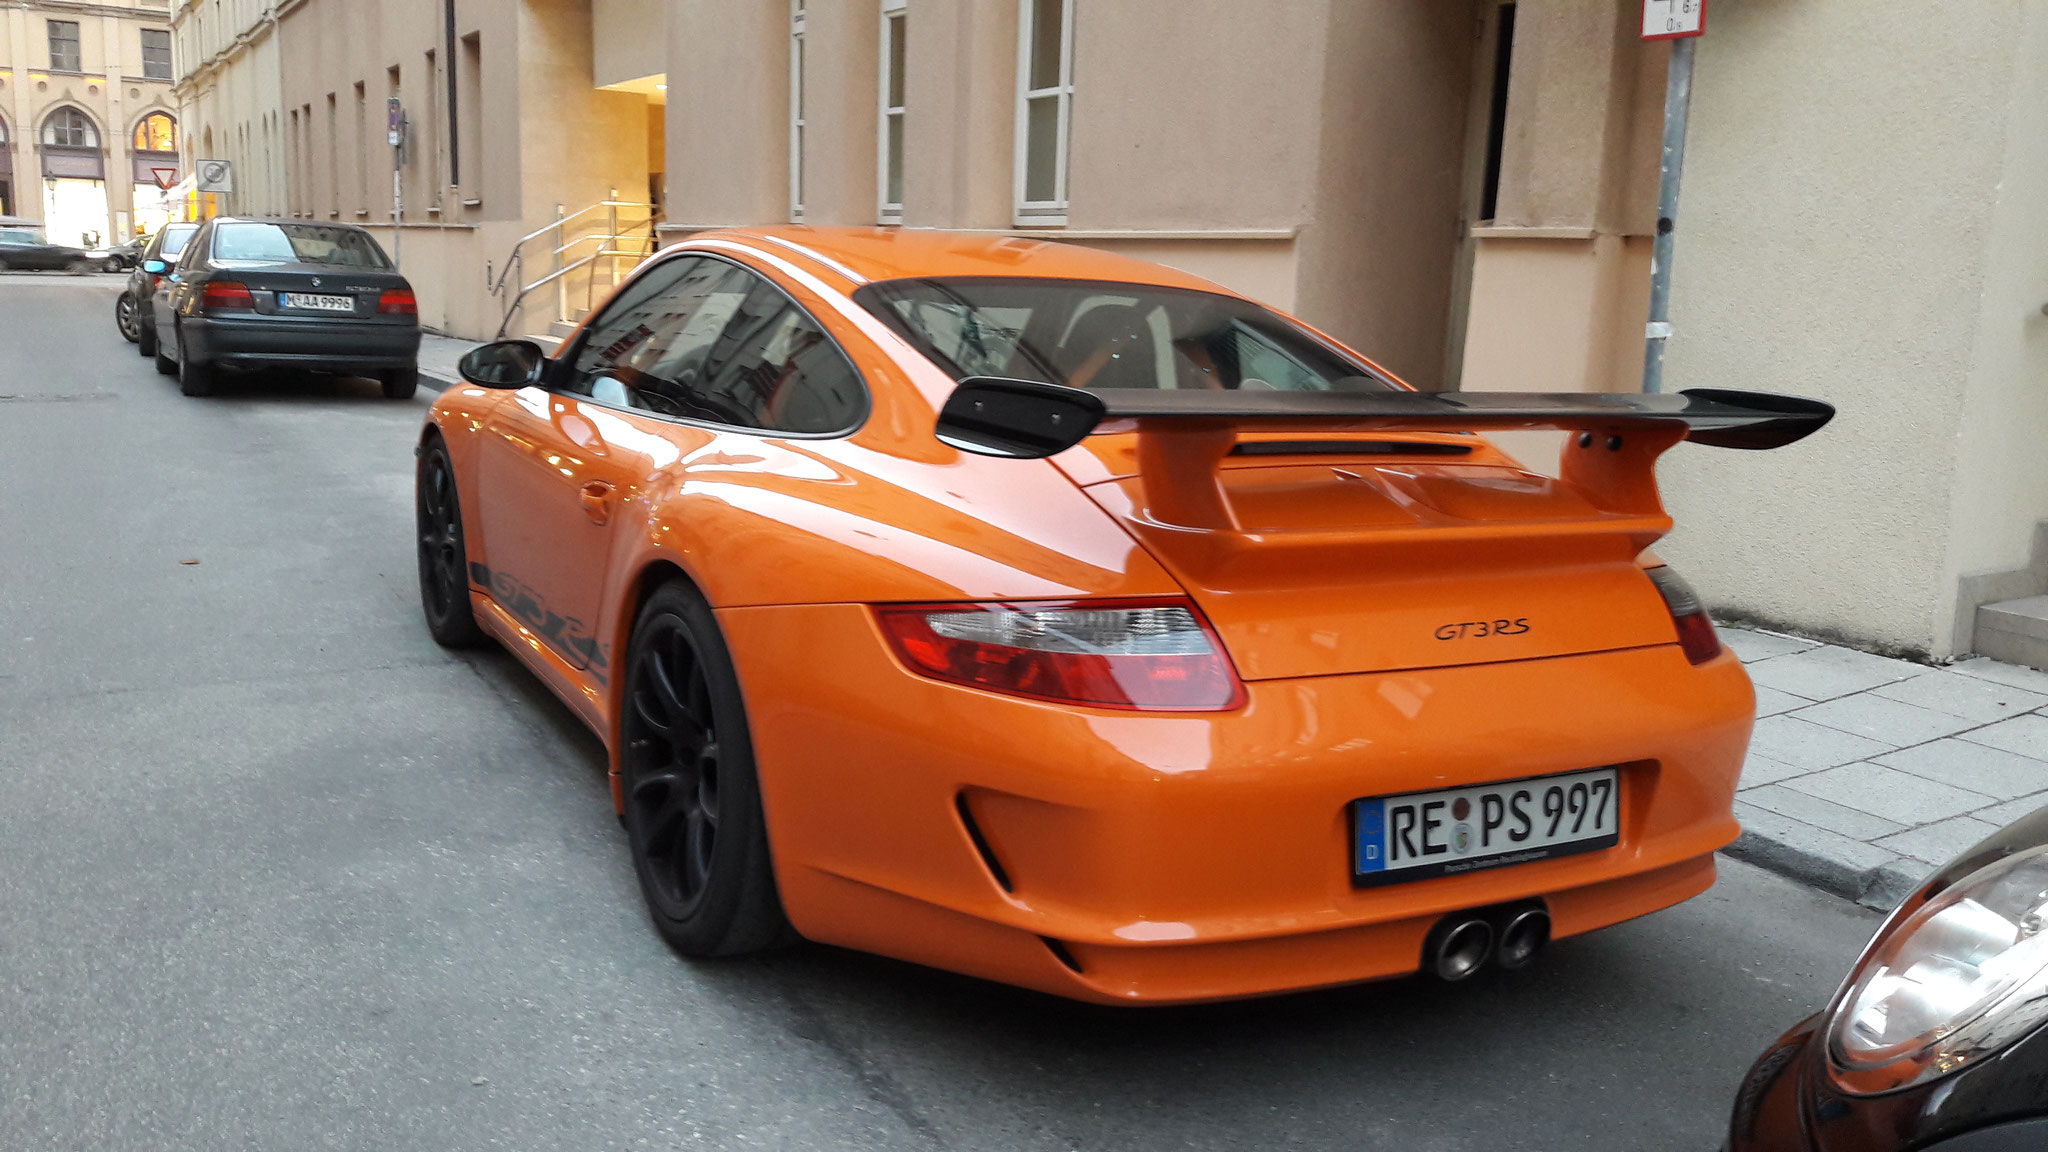 Porsche 911 GT3 RS - RE-PS-997